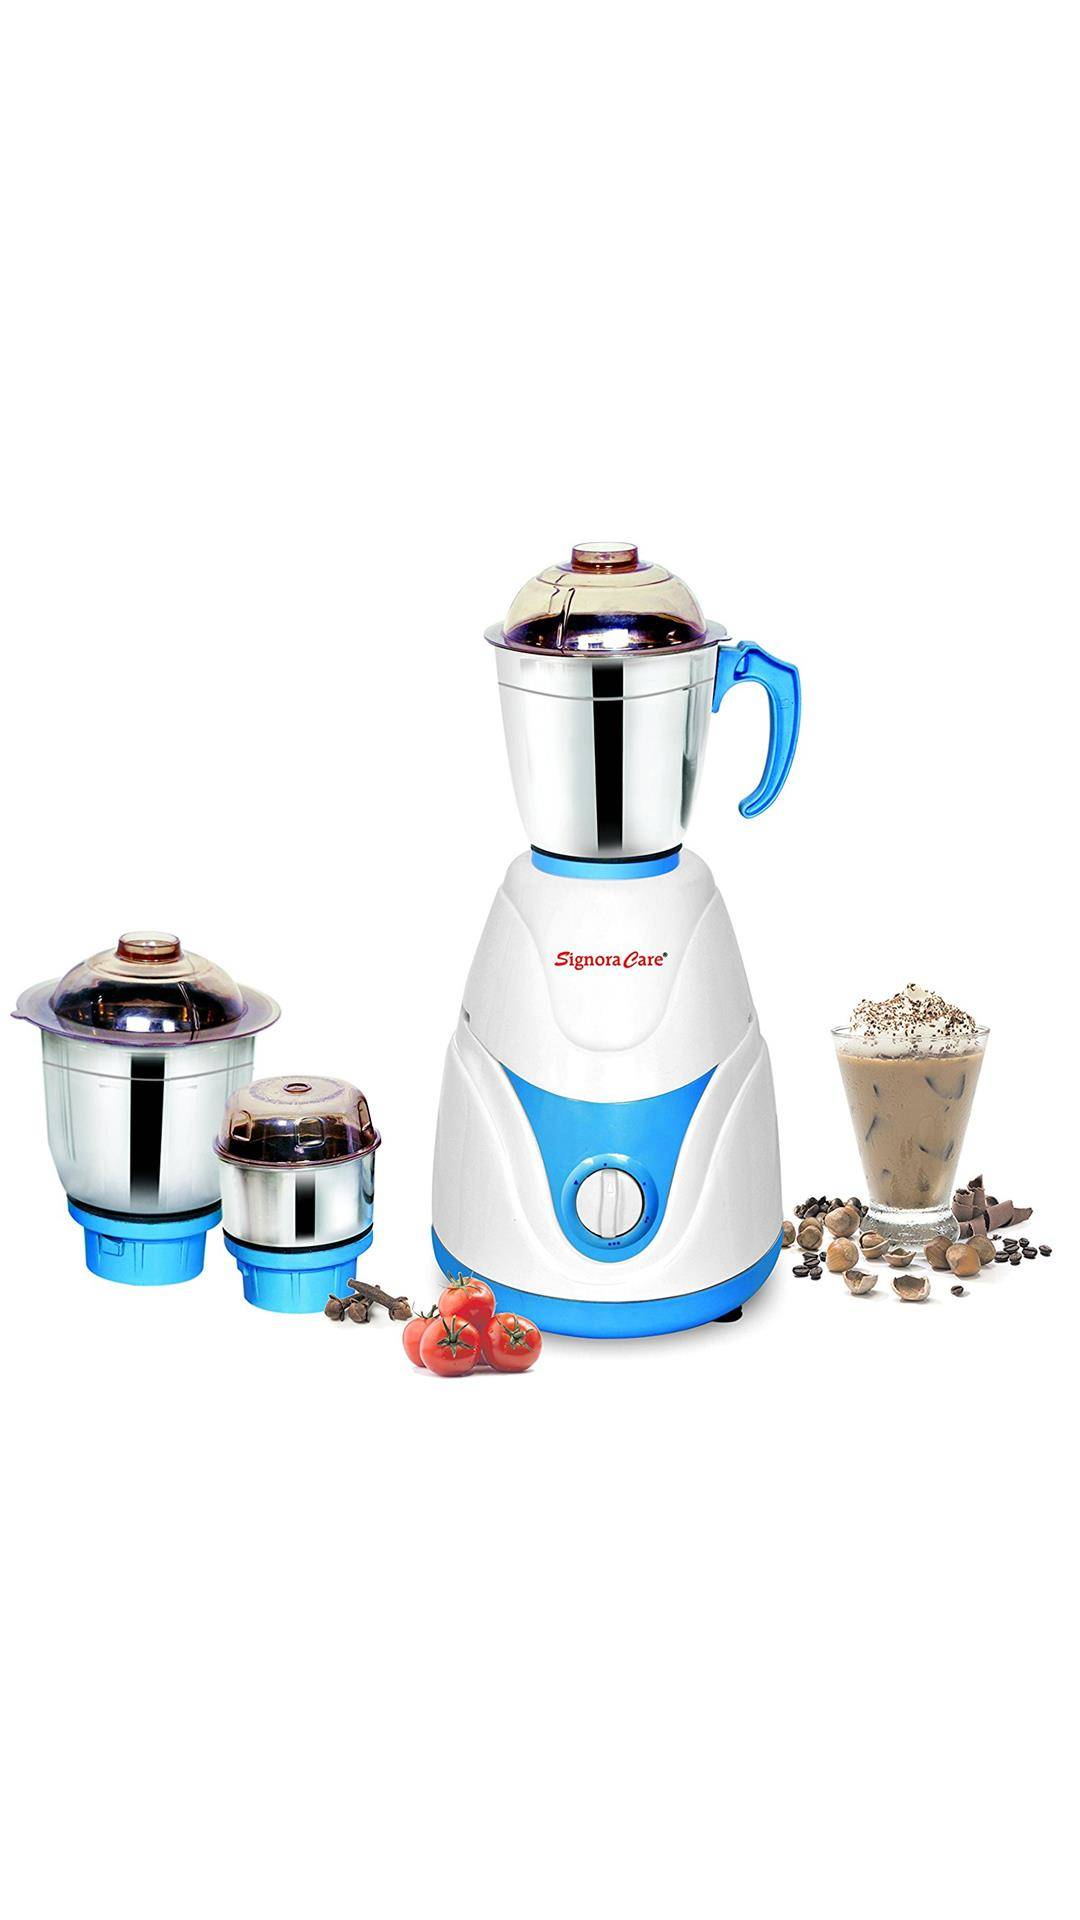 7e6b33984 Paytm-Buy-SignoraCare-Eco-Plus-500-W-Mixer-Grinder-White-Blue3-Jar-at -Rs-749-only.jpg